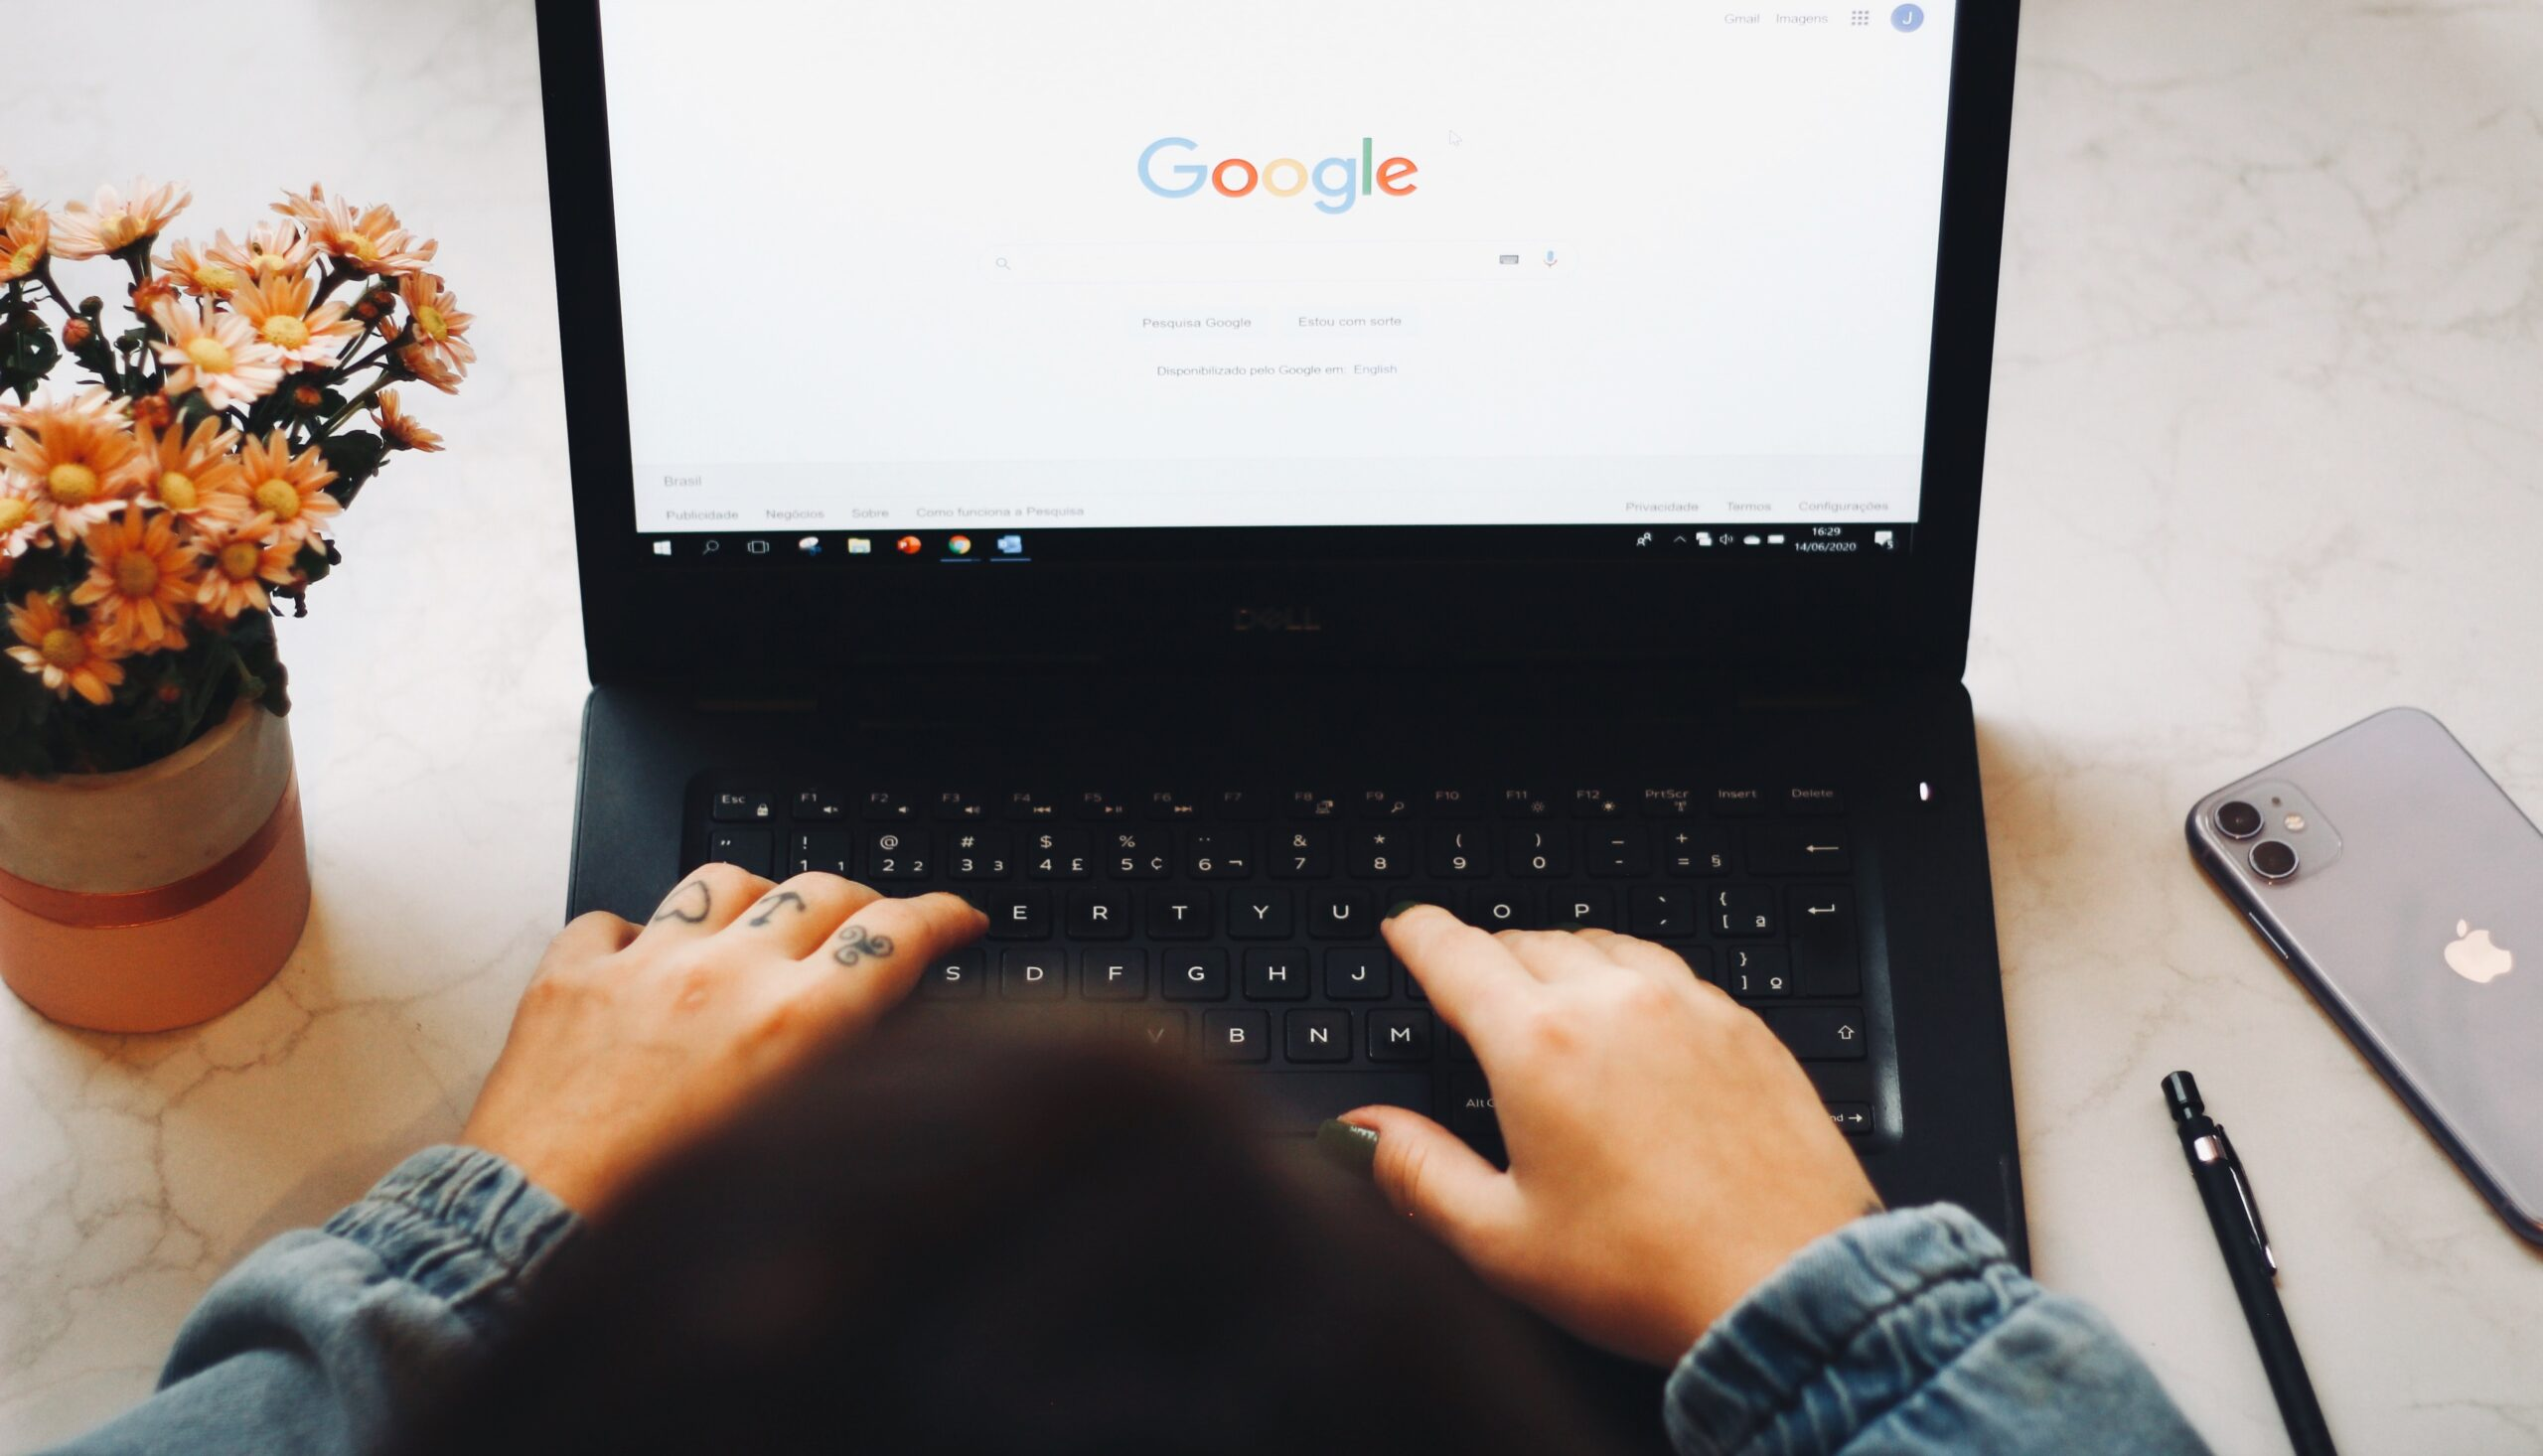 How to manage your Privacy on Google monitoring